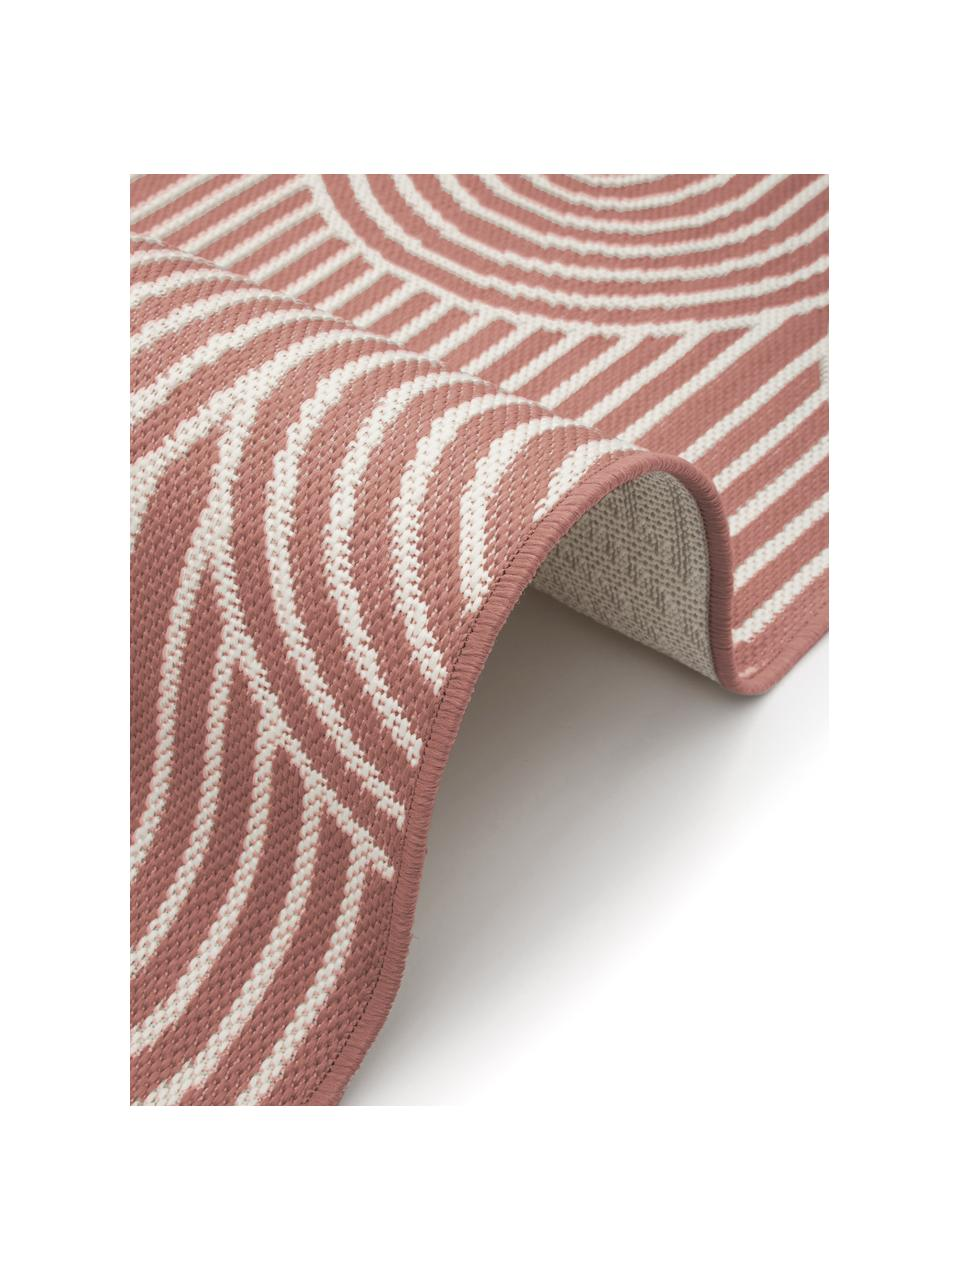 In- & outdoor vloerkleed Arches in koraalrood/wit, 86% polypropyleen, 14% polyester, Rood, wit, B 200 x L 290 cm (maat L)